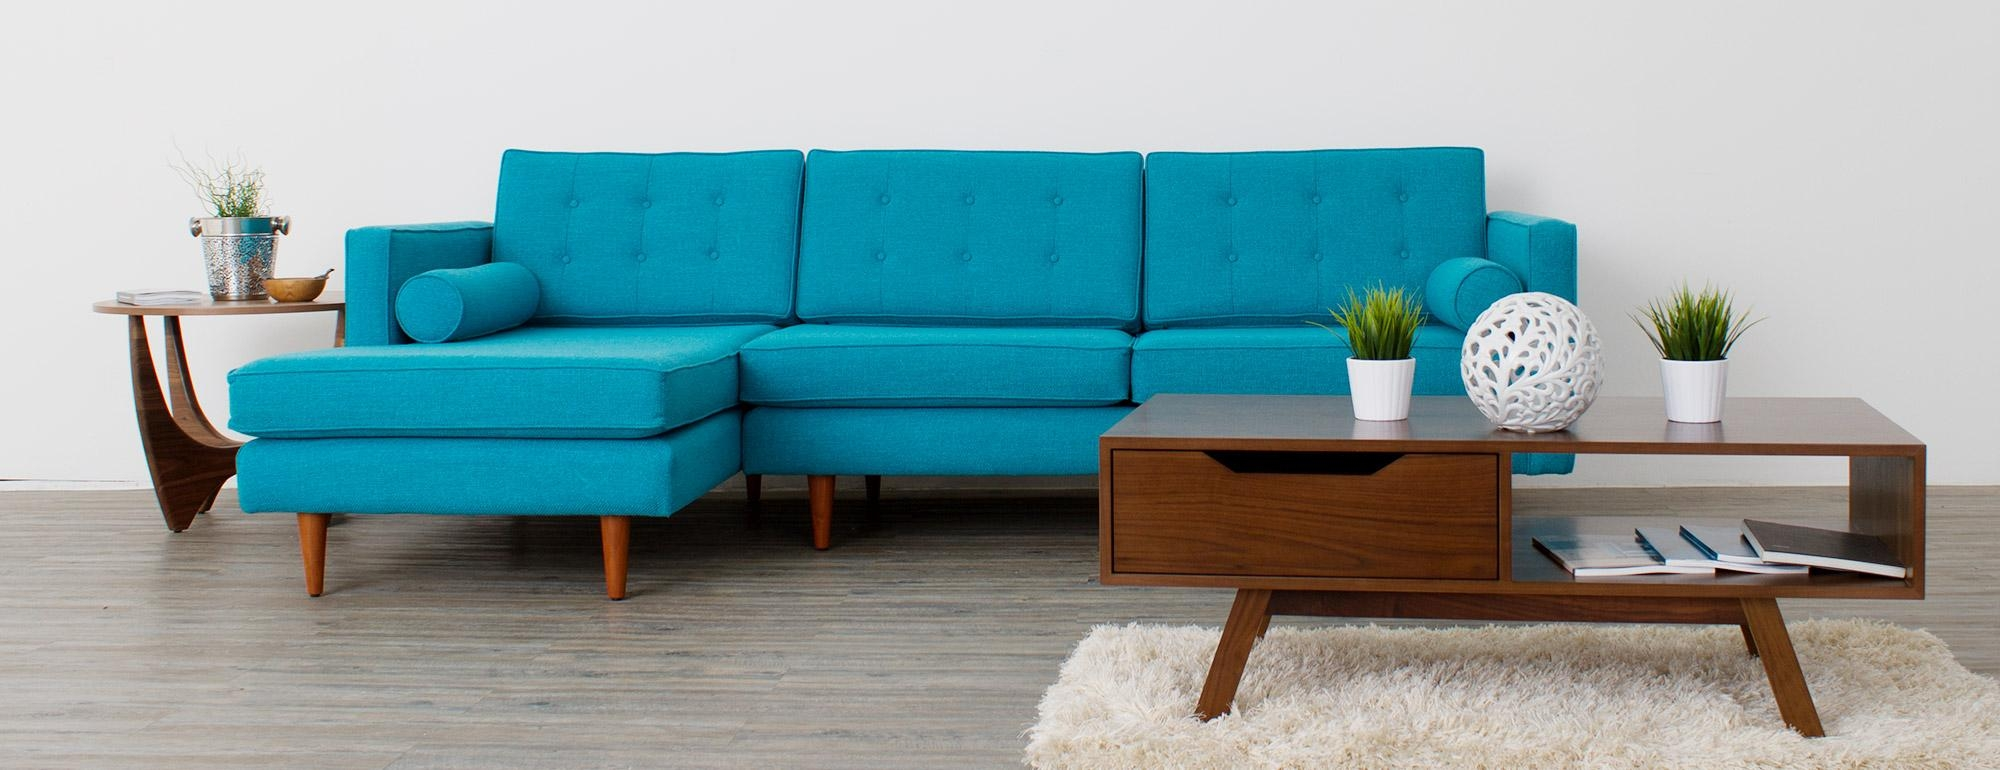 Braxton Sectional | Joybird With Regard To Braxton Sectional Sofa (Image 7 of 15)